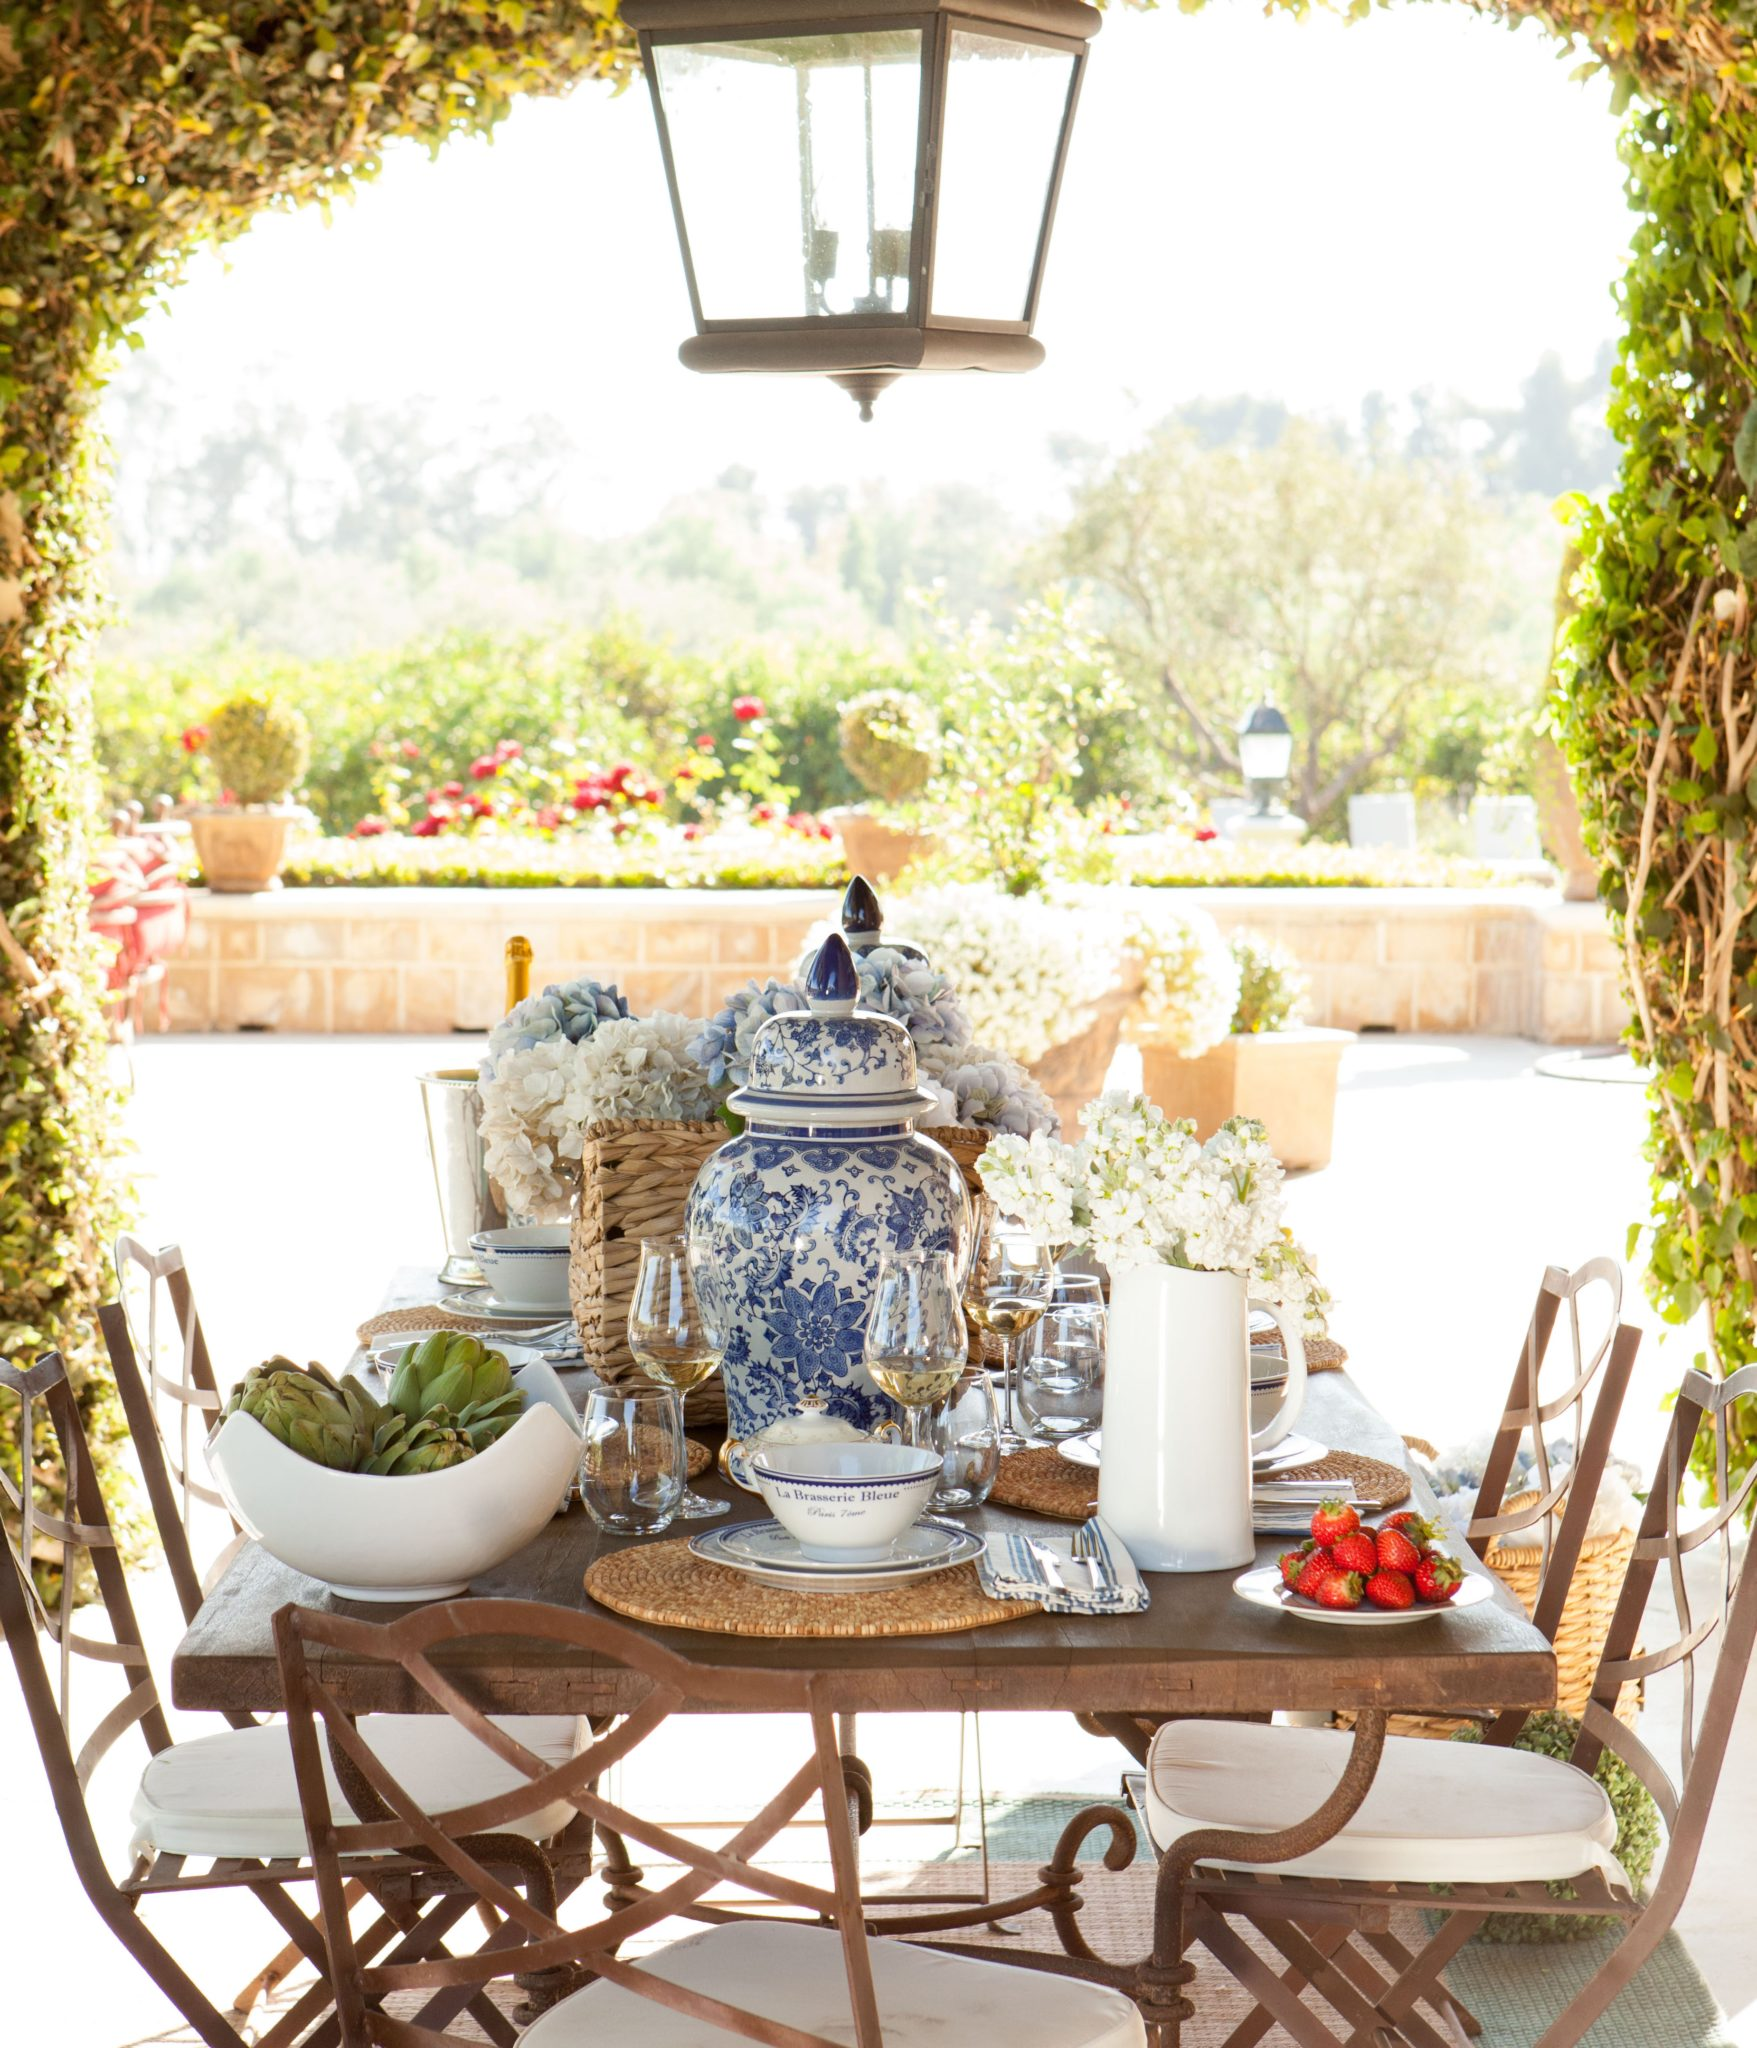 A stylish outdoor entertaining space by Amodei